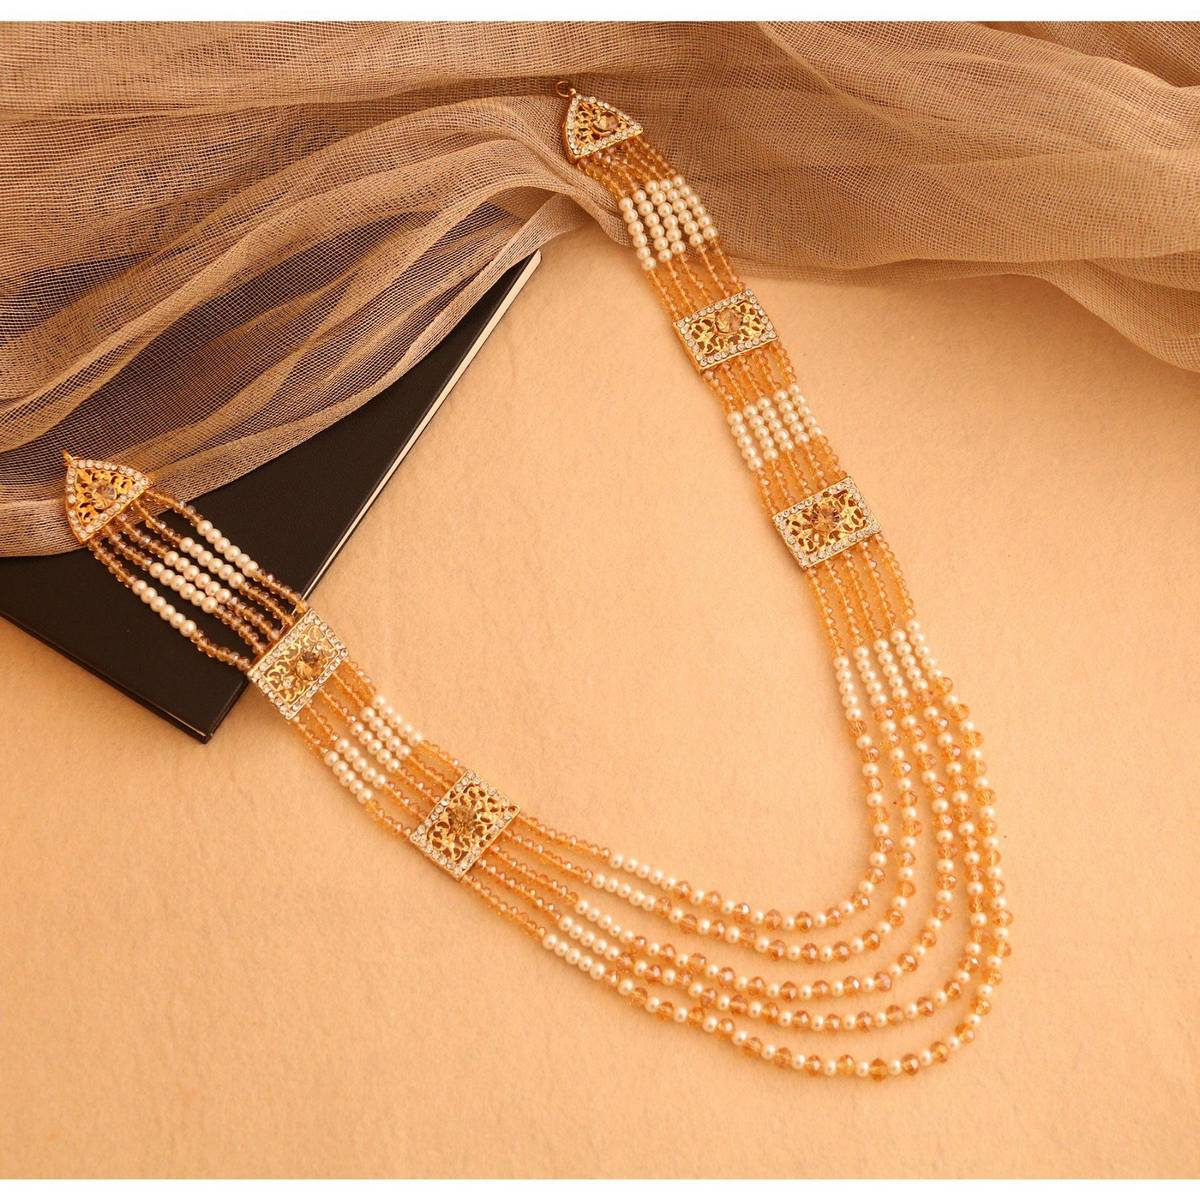 Traditional Pearl Beads Bridal Wear Necklace Earrings - Wedding Jewelry Set